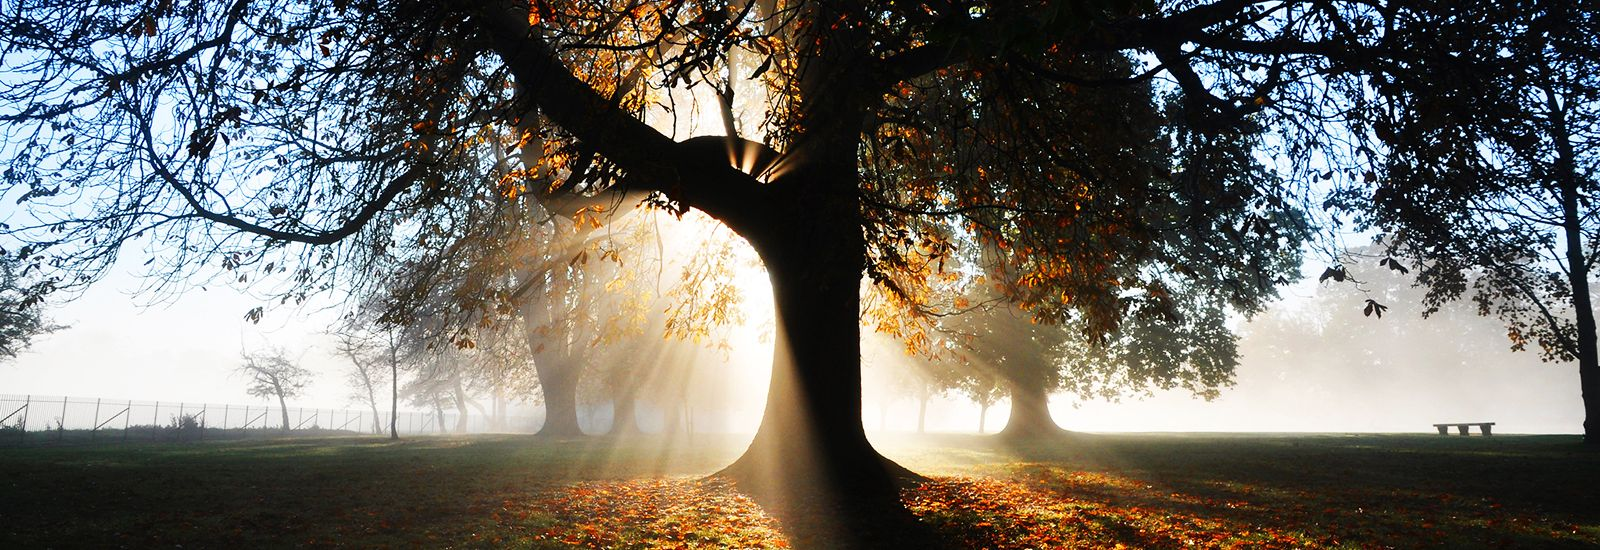 Sun rising behind a tree on a misty morning